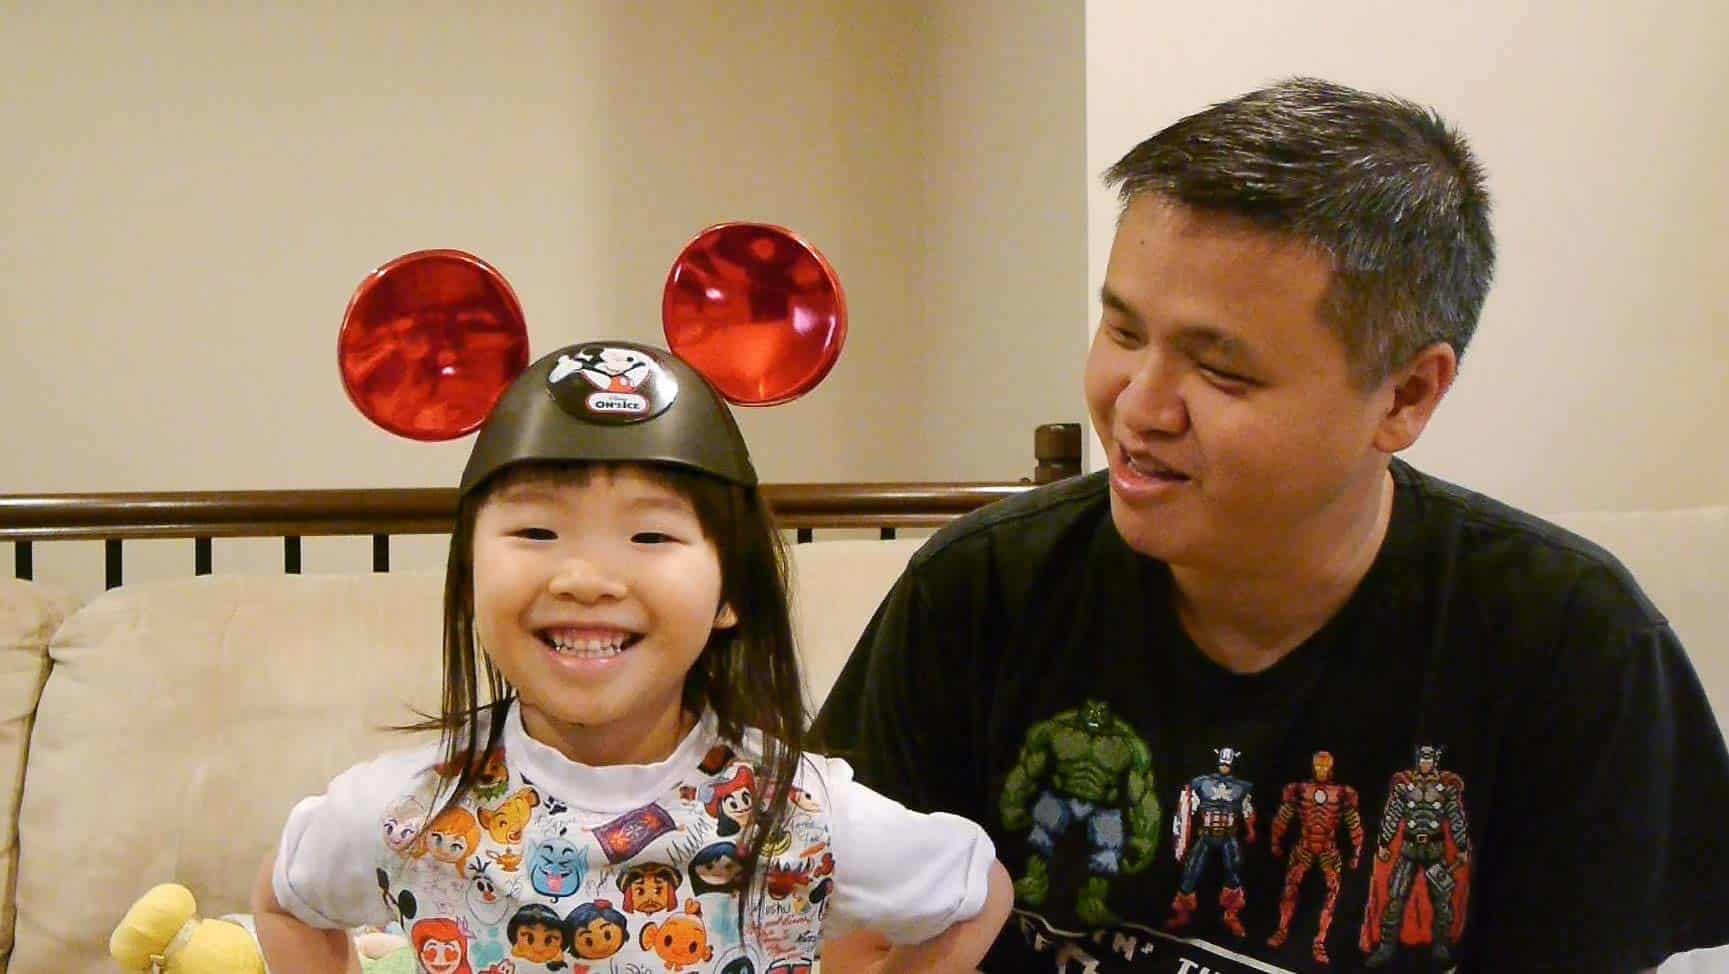 Michael and his daughter wearing Mickey Mouse ears